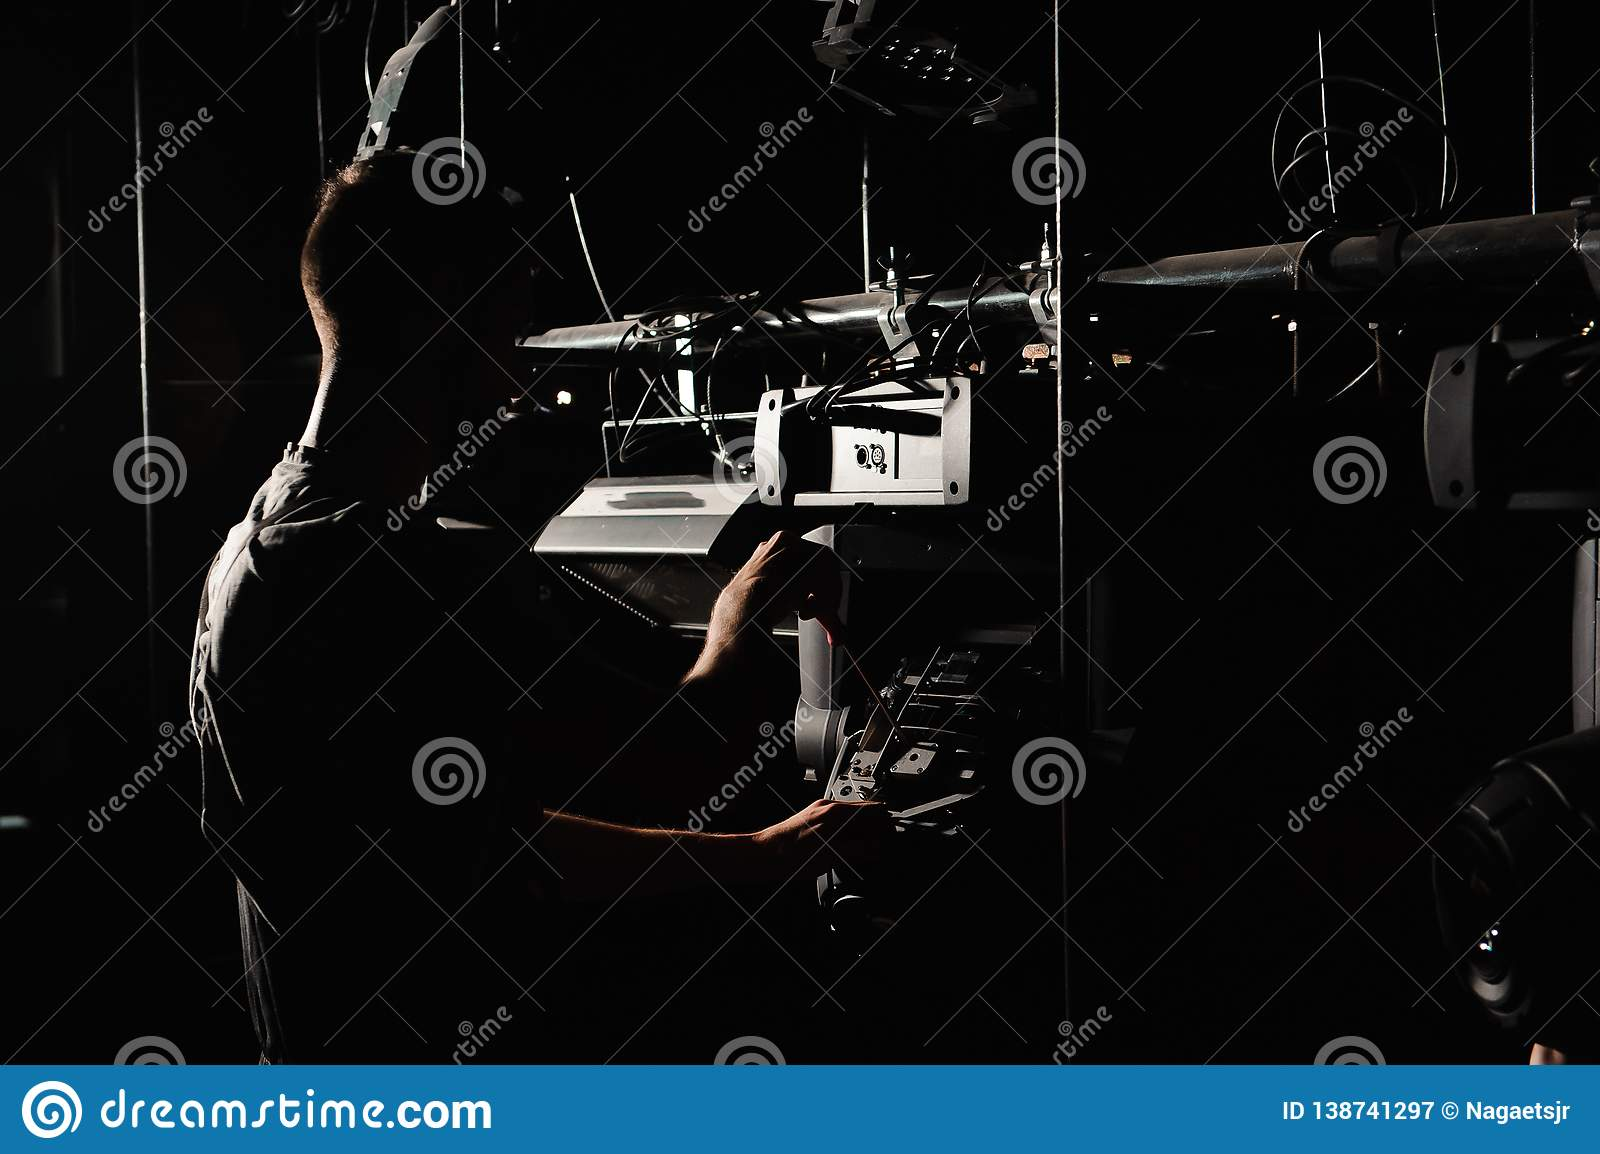 The lighting engineer repairs the light device on stage